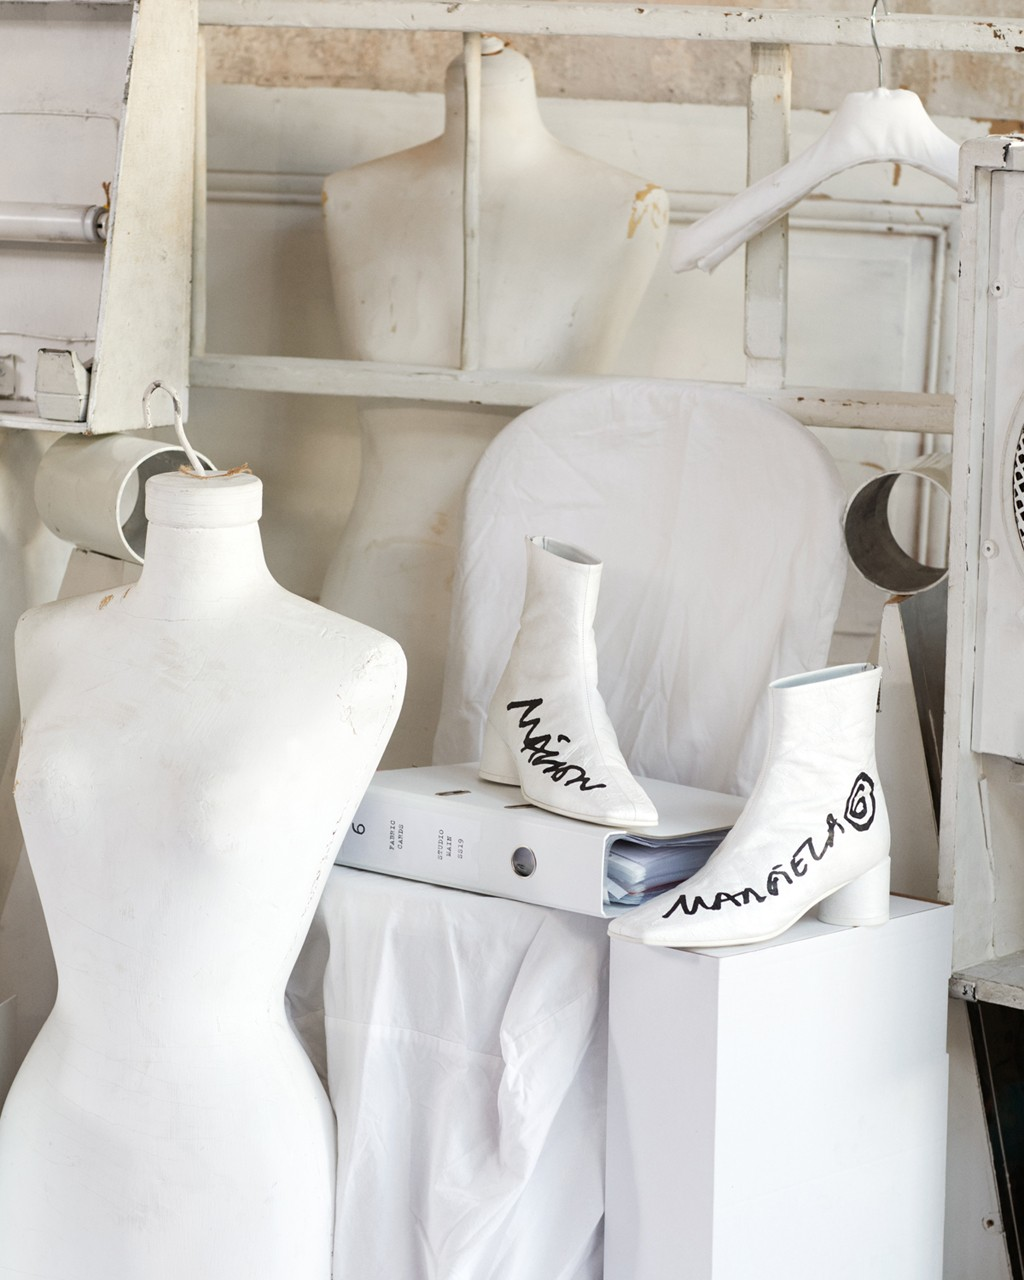 MM6 Maison Margiela Spring/Summer 2021 Collection lookbook ss21 martin menswear accessories tabi shoes sneakers womenswear runway show collaboration